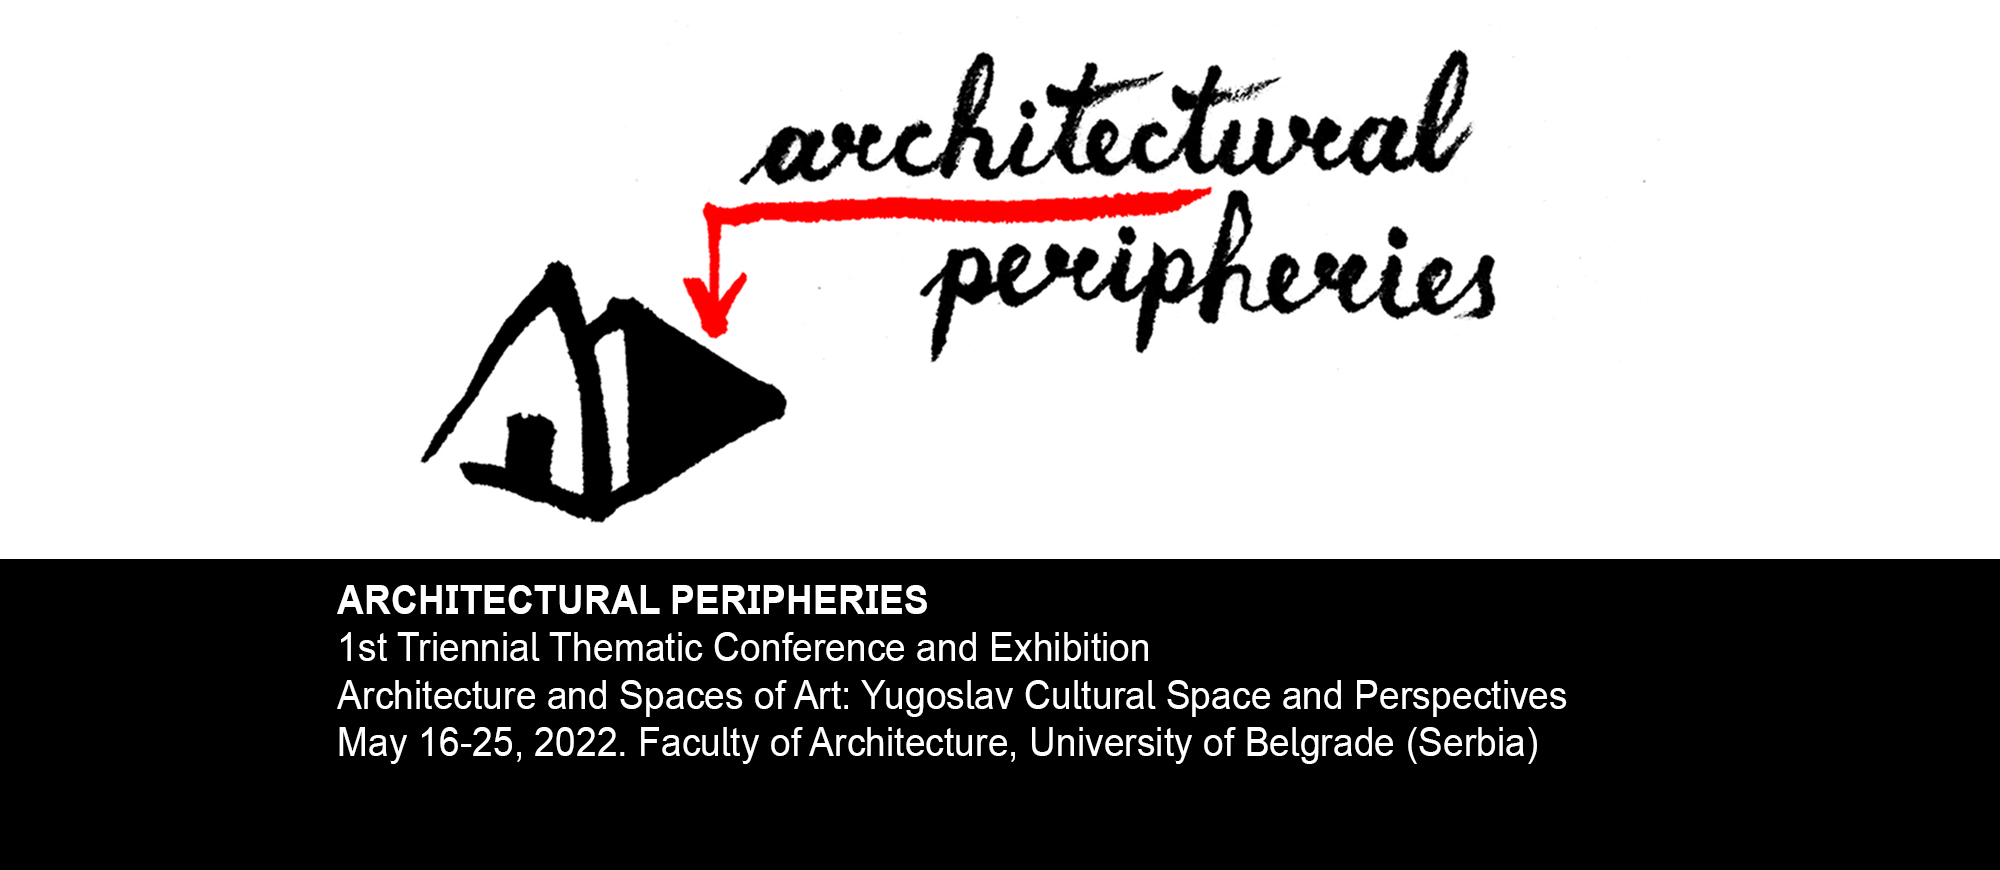 ARCHITECTURAL PERIPHERIES